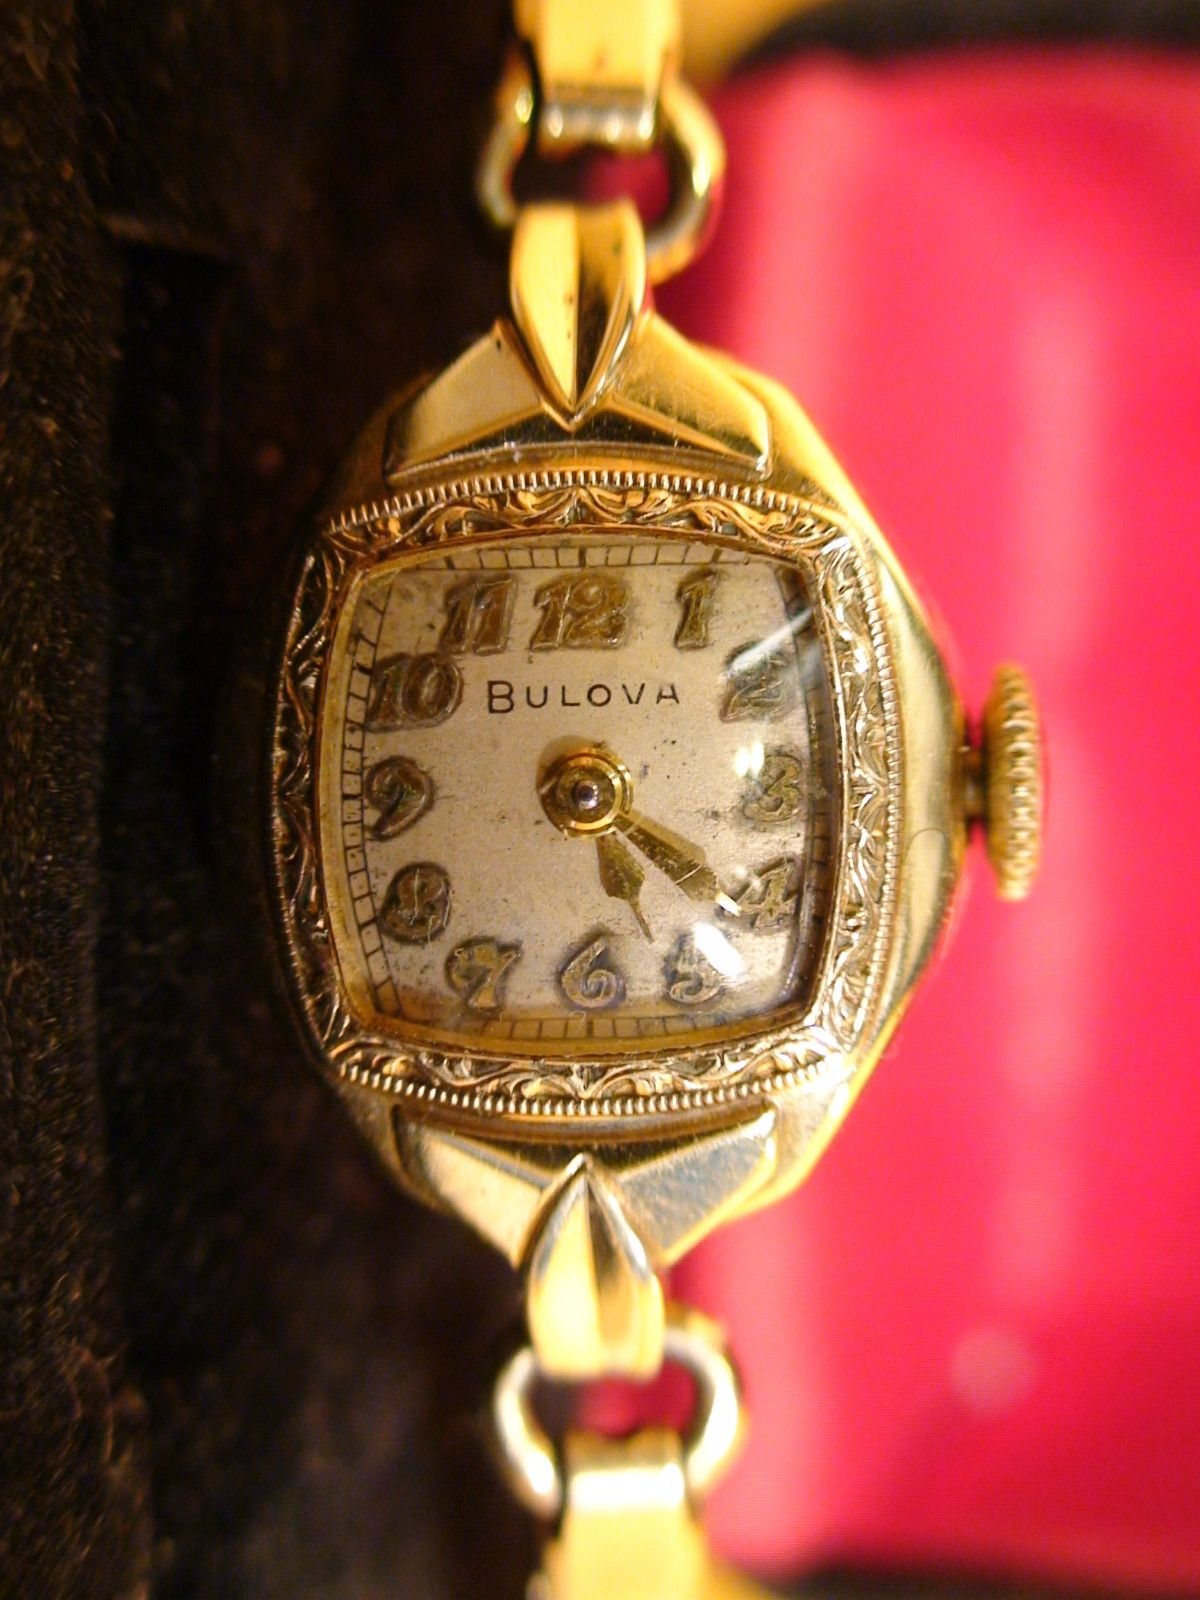 Antique 1940s Bulova Swiss Vintage Ladies 10k Gold Filled Watch Serviced Works Vintage Watches Women Women Watches Gift Antique Watches